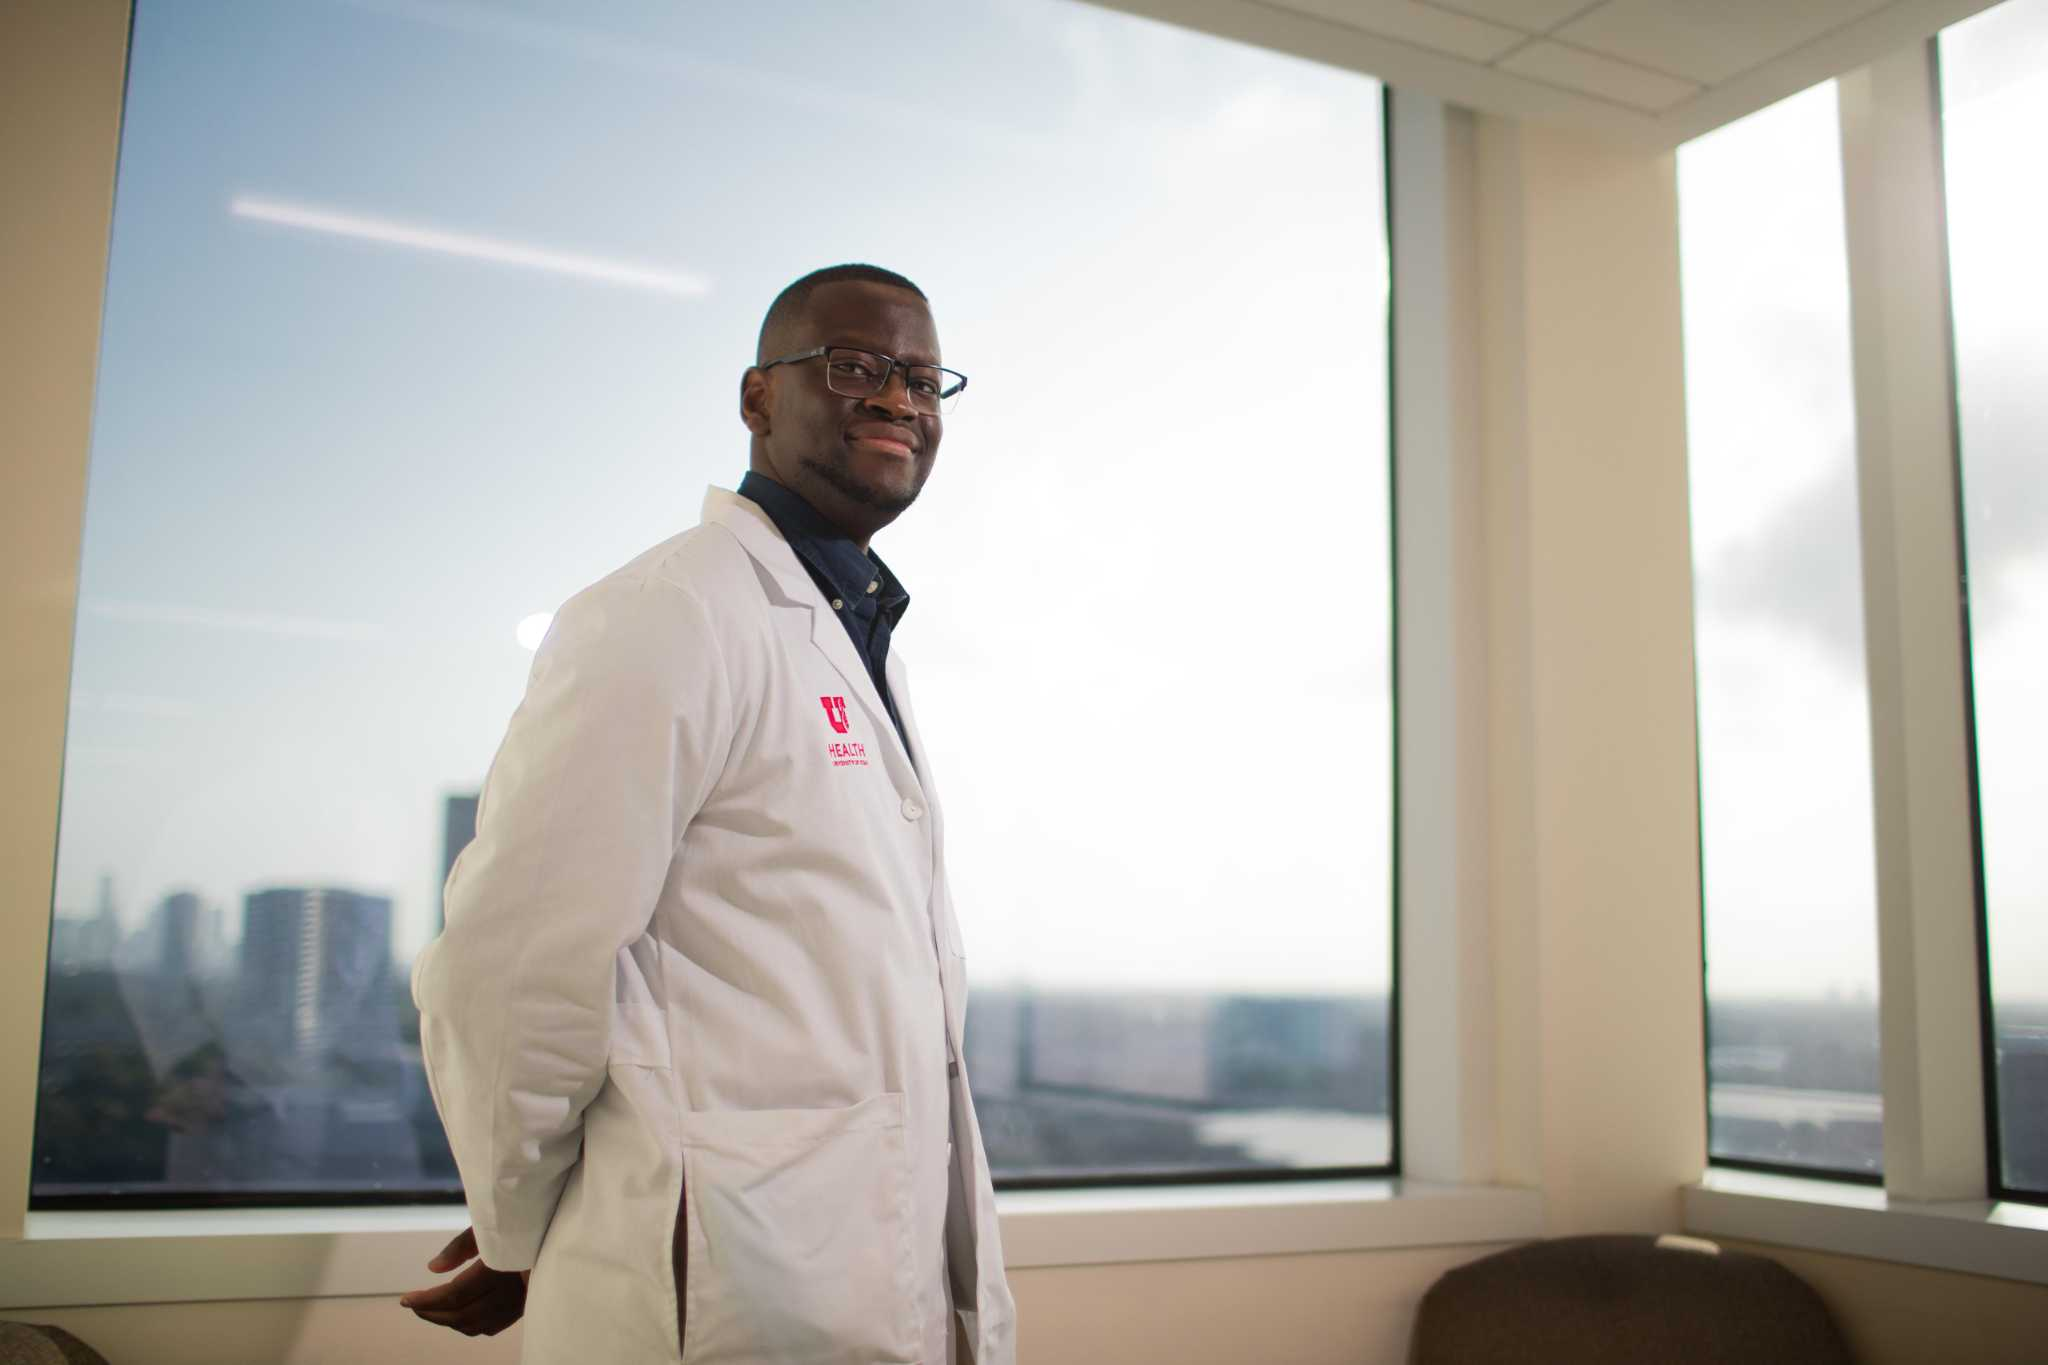 www.houstonchronicle.com: 87 percent of orthopedic surgeons are white. This Baylor doctor is working to diversify his field.